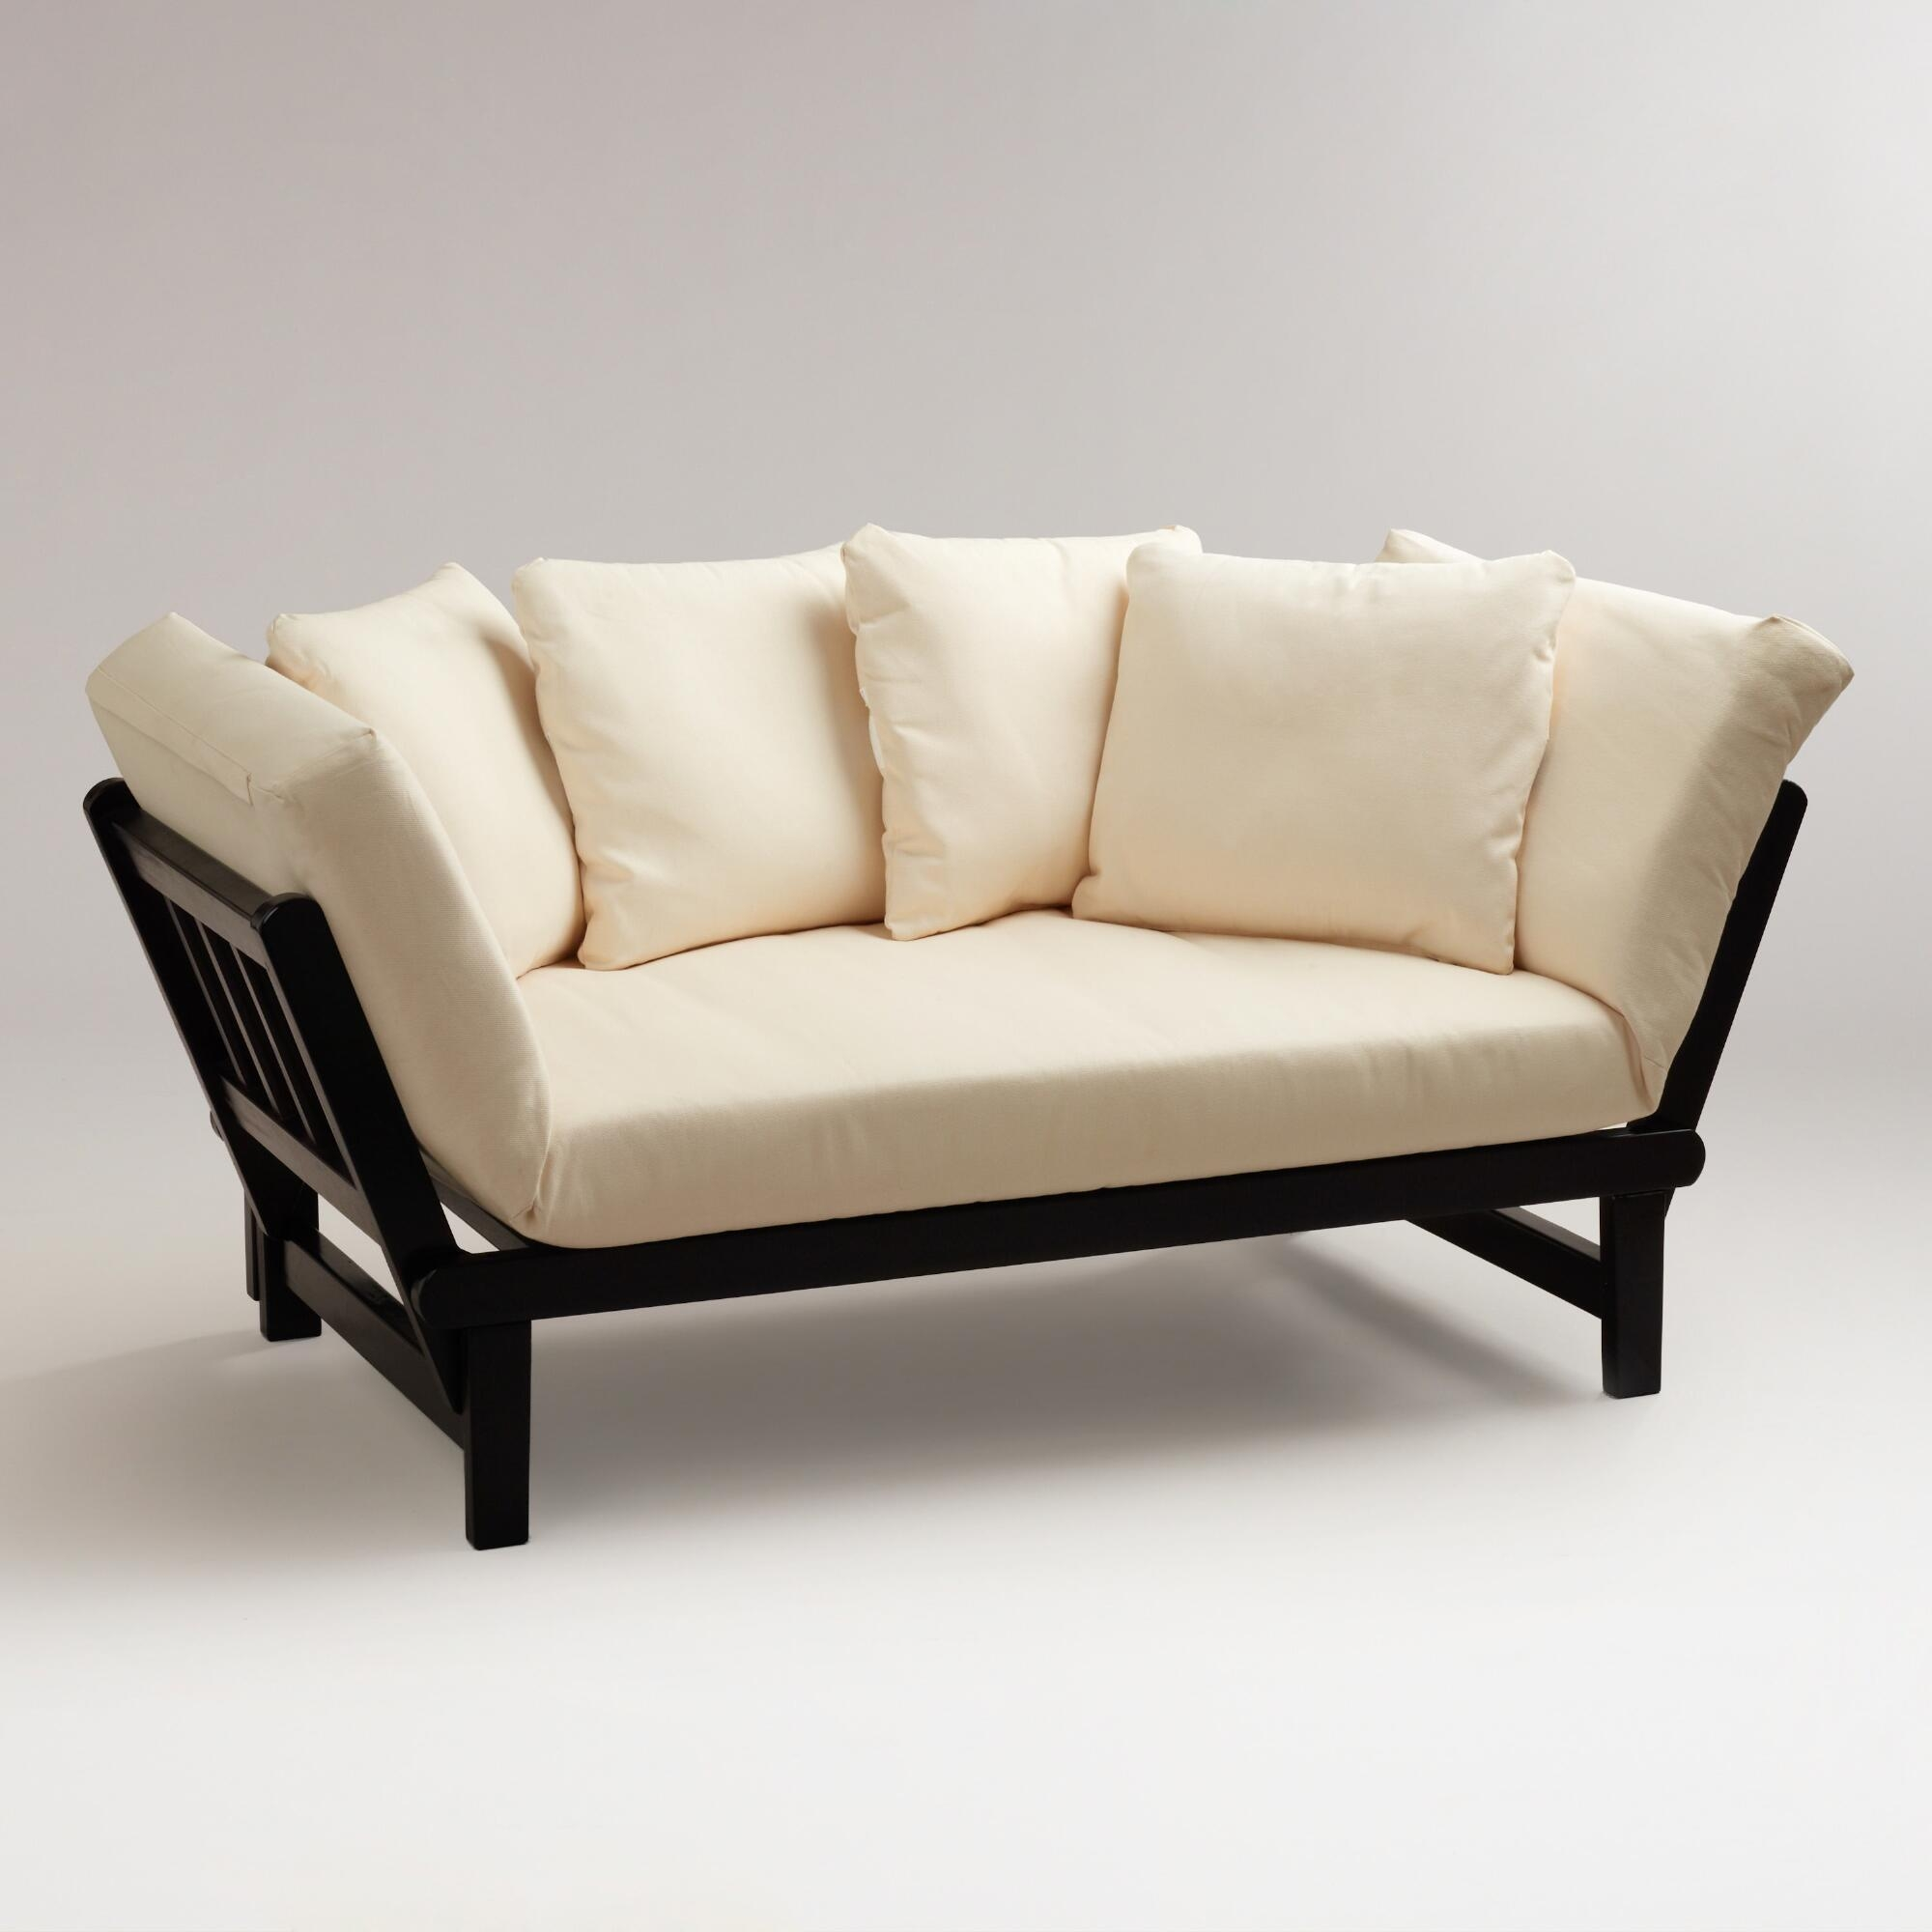 Furniture Awesome The Best Schnadig Sofa Has Come With Great Throughout Bedroom Sofa Chairs (View 8 of 15)